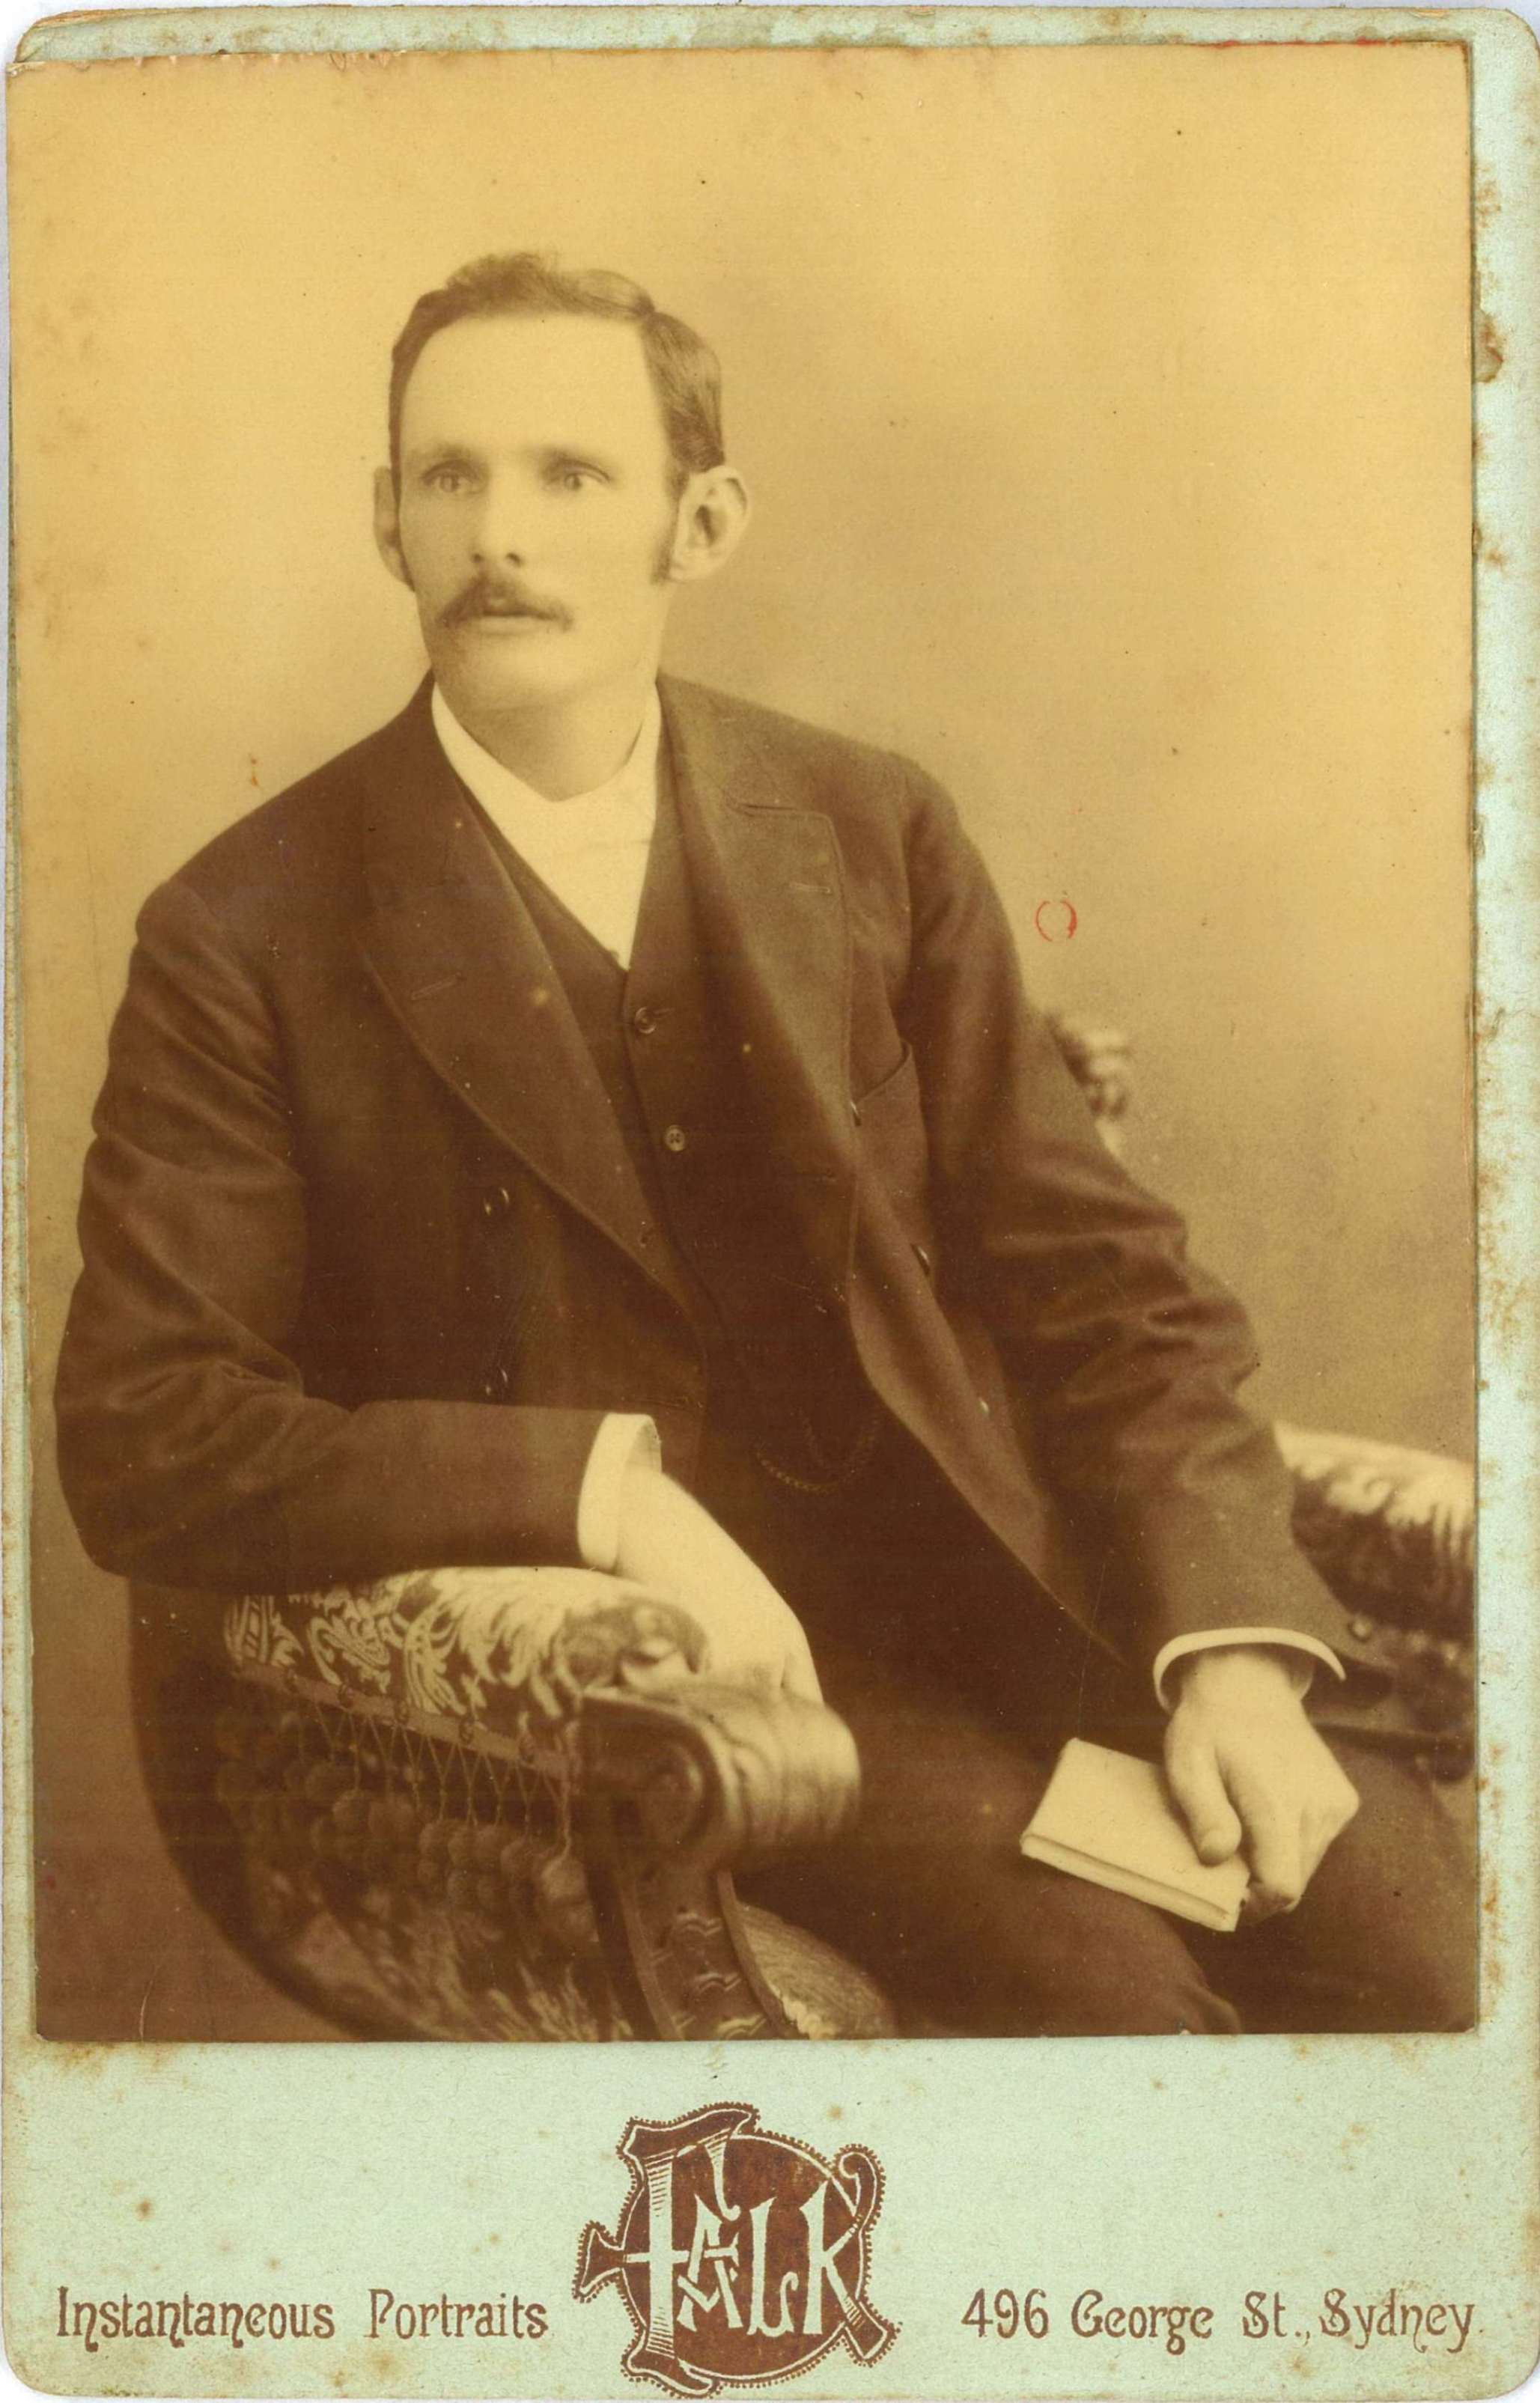 James Thomas Thorburn, around 1888 / Falk Studios